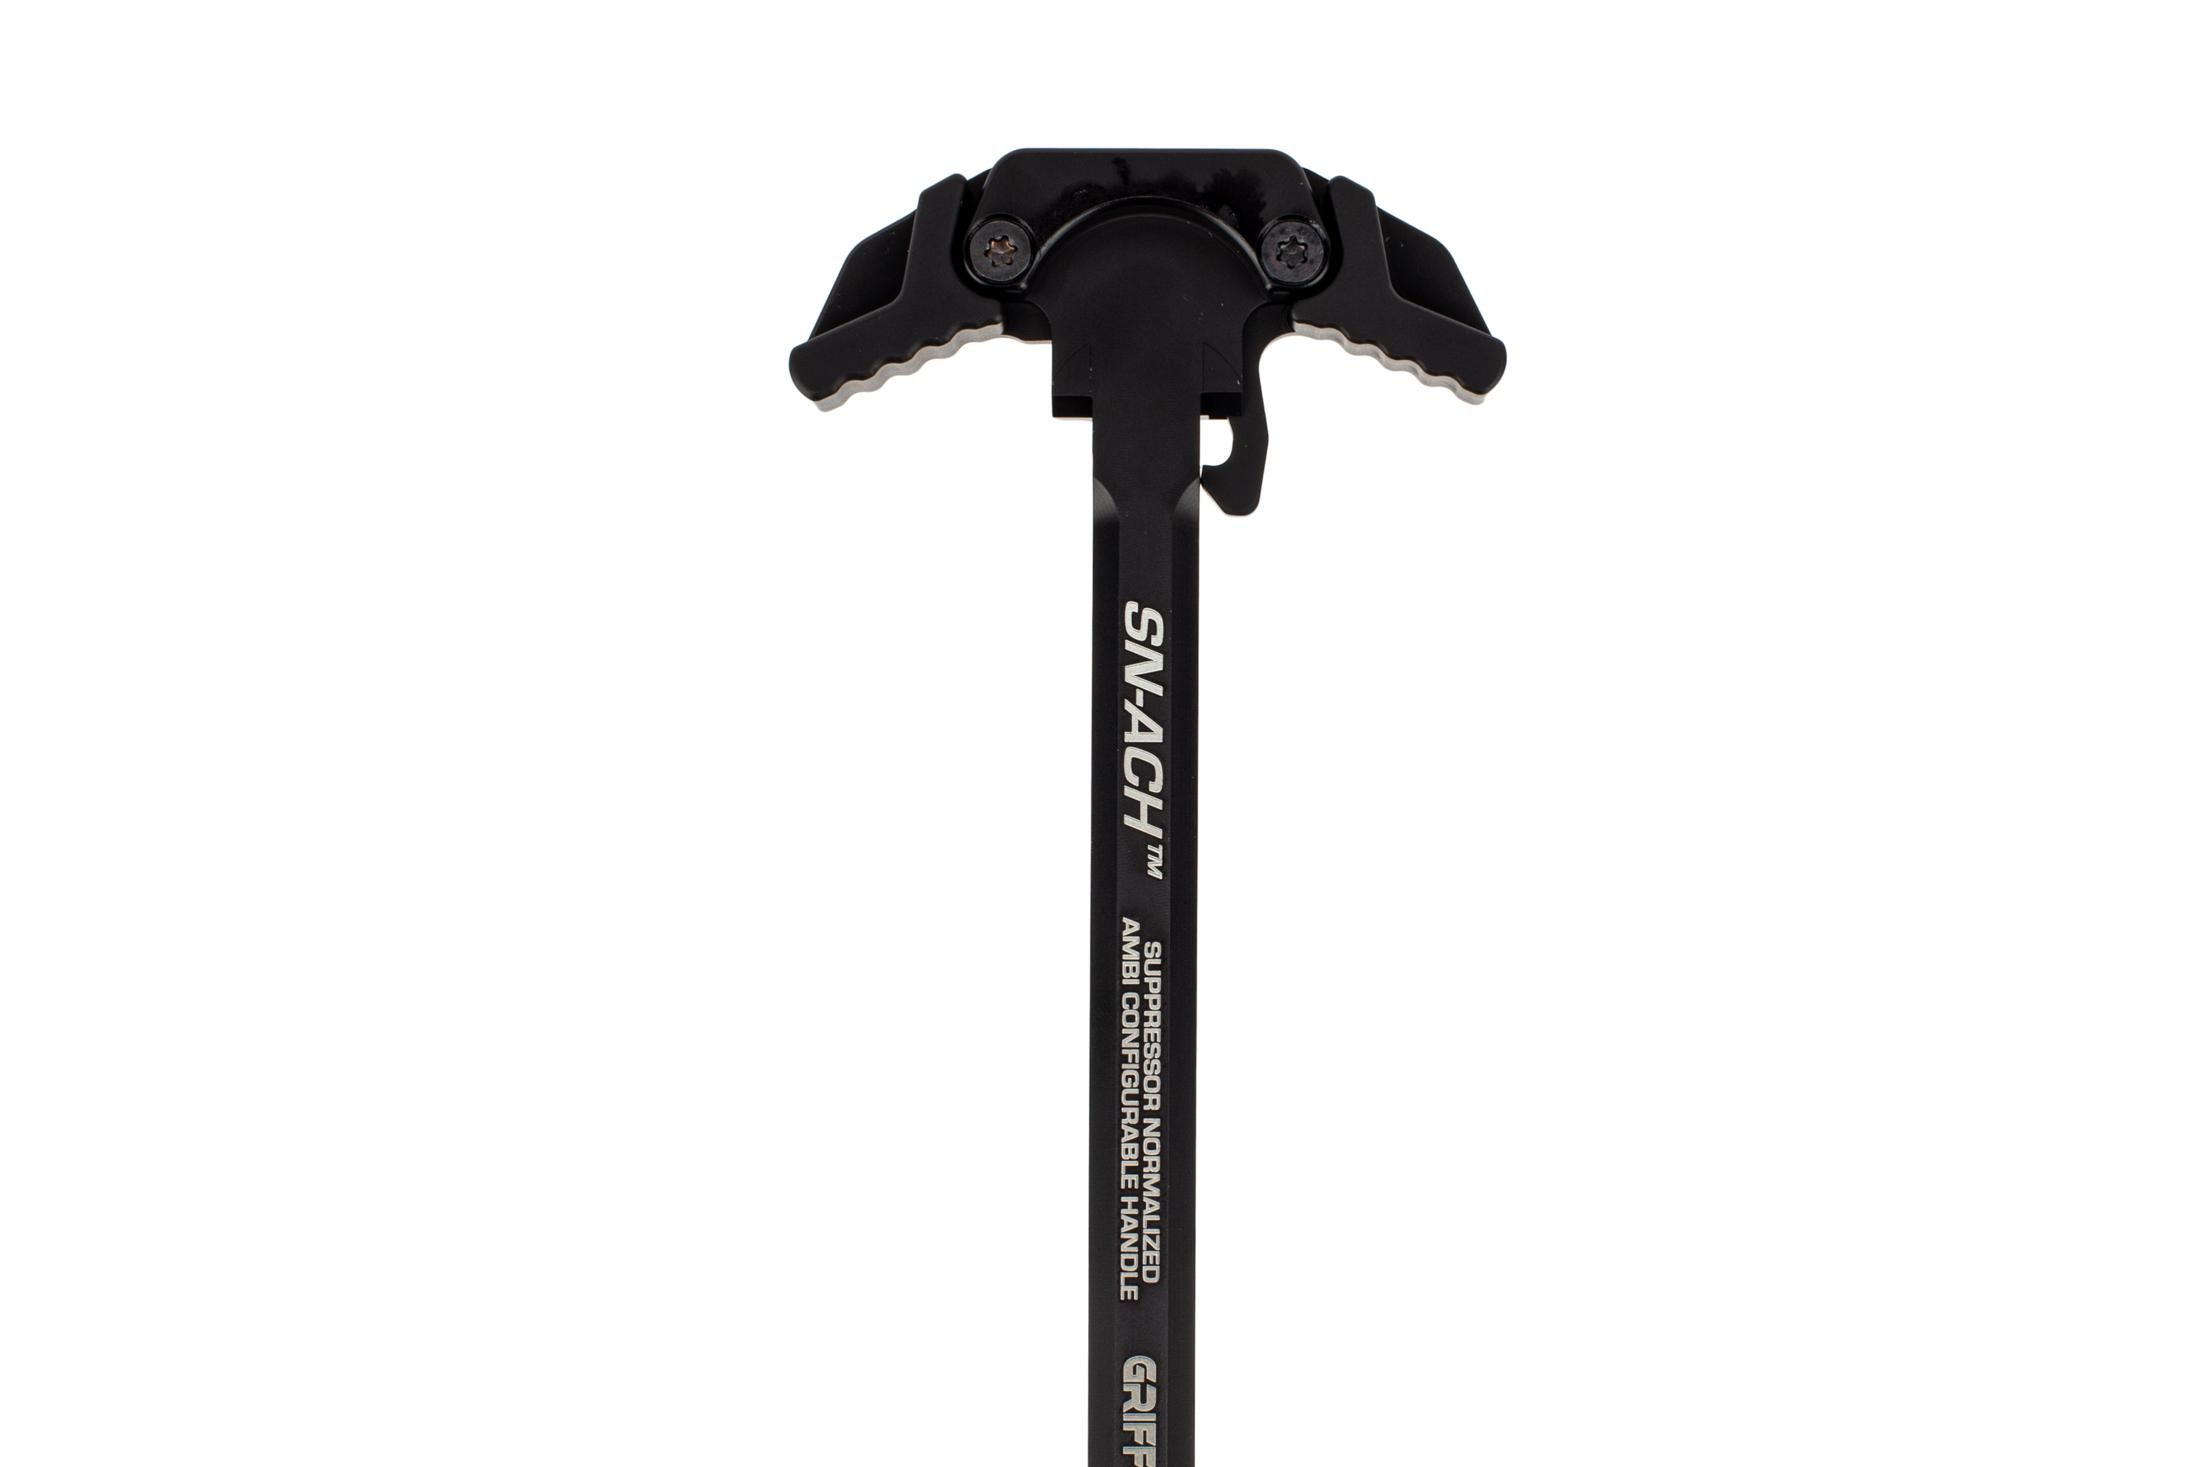 Griffin Armament SN-ACH Ambi charging handle is designed for use with suppressors